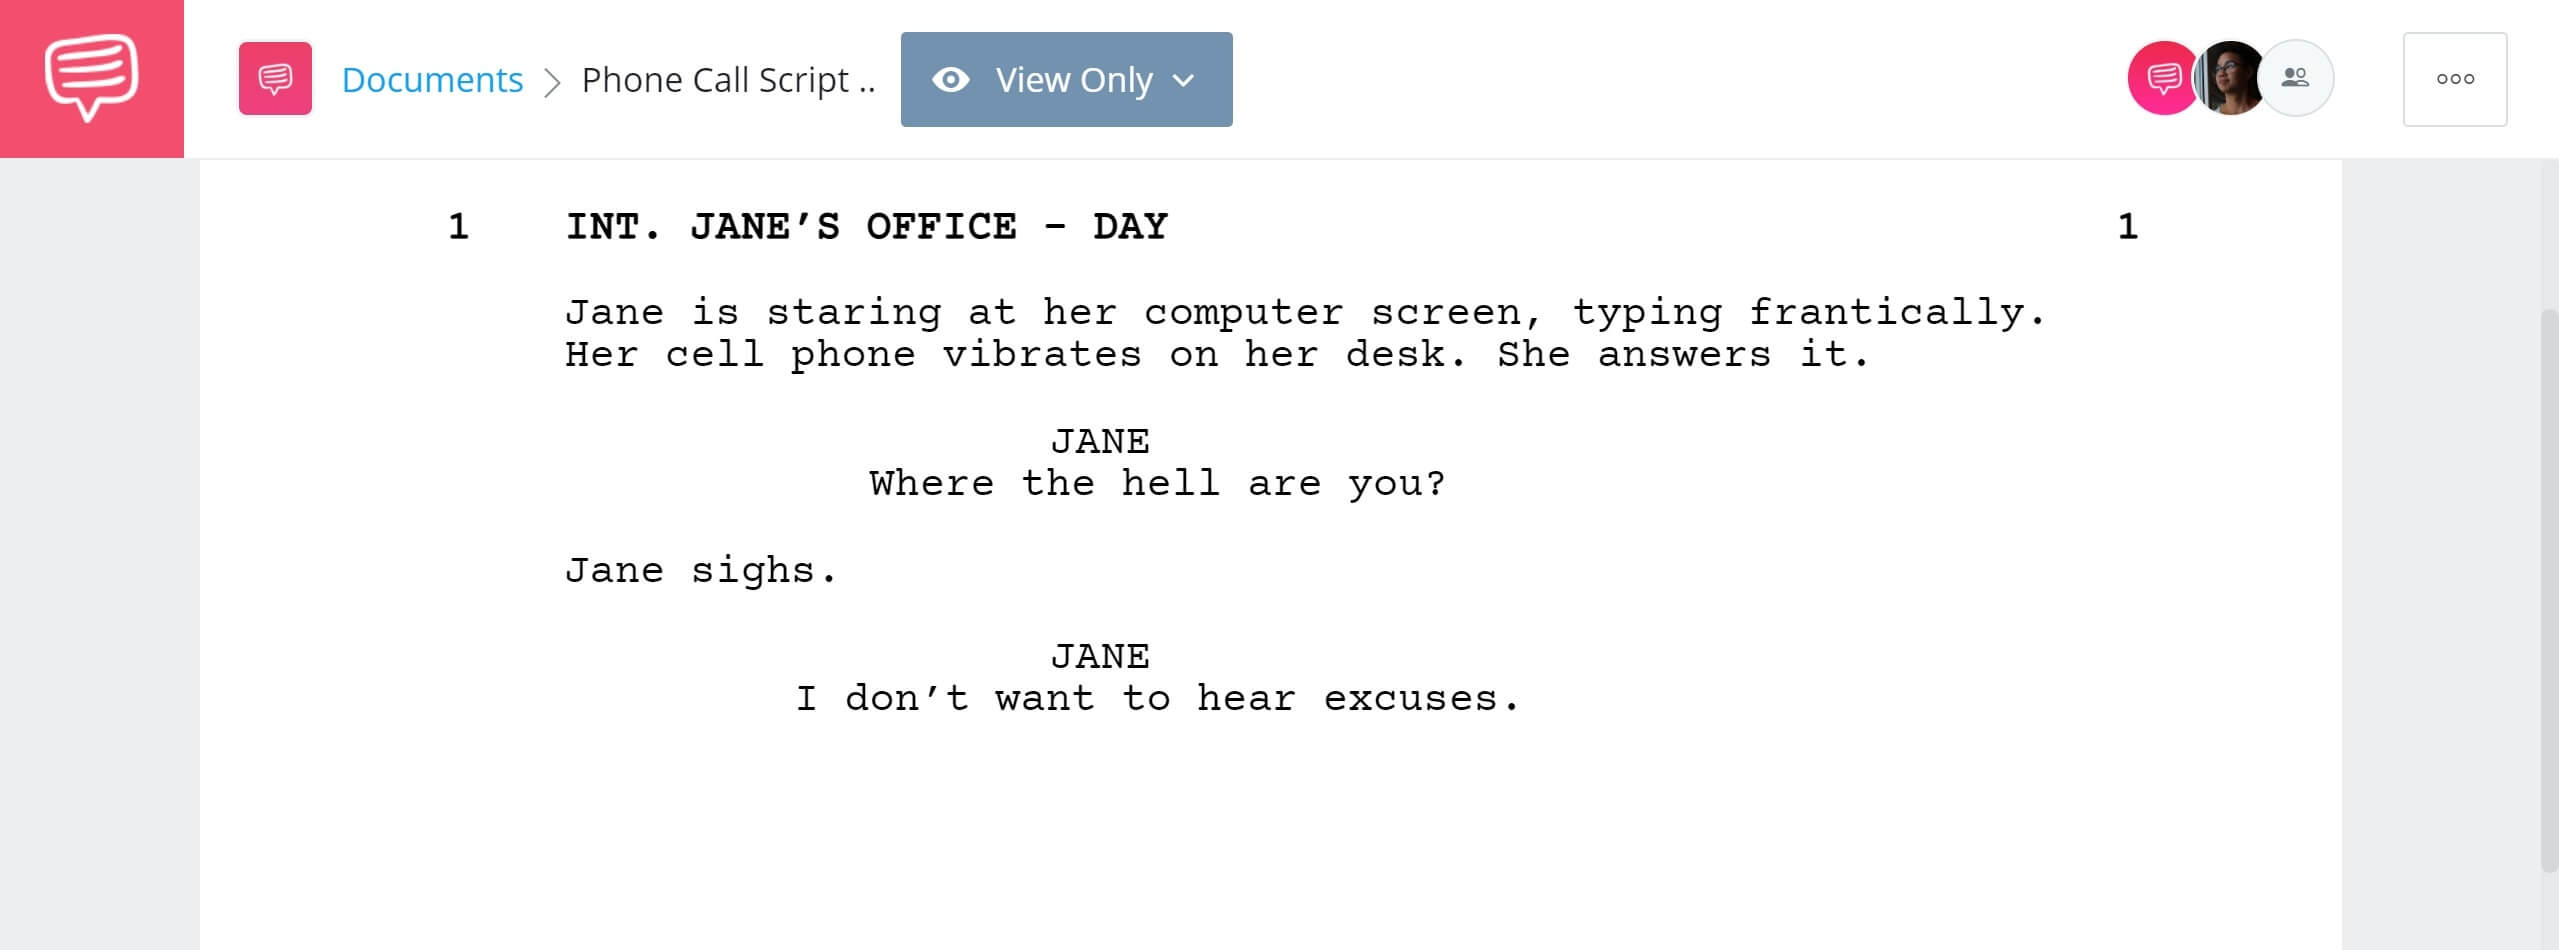 How to Write Telephone Conversation in Screenplay - One Person Example - StudioBinder Screenwriting Software